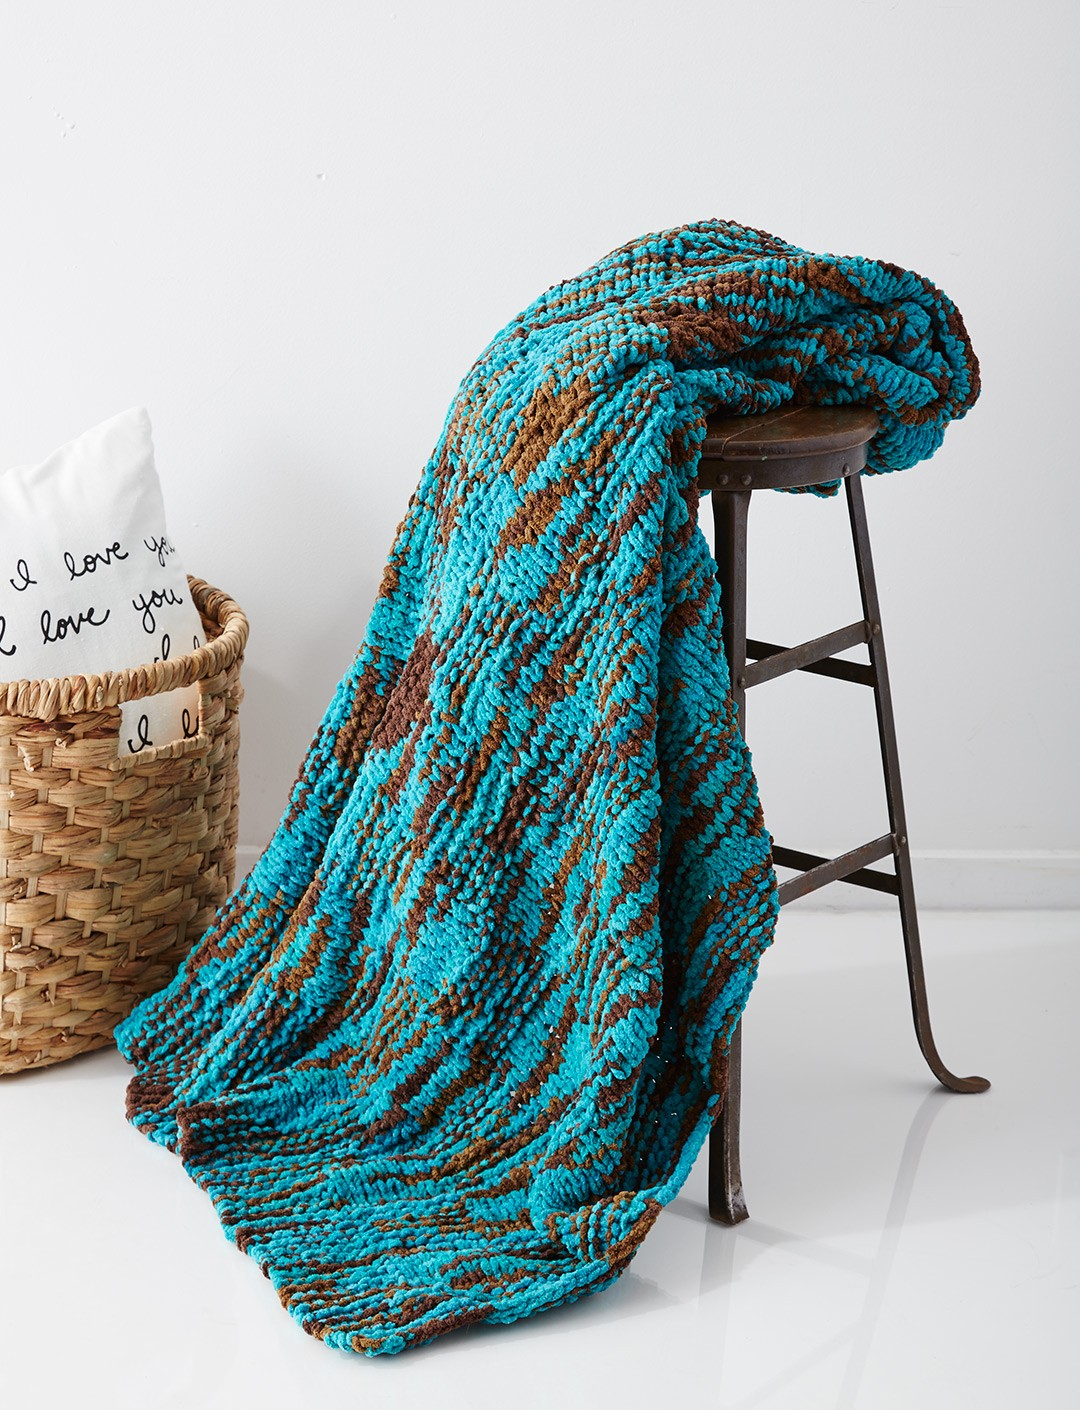 Bernat Knitting Patterns Free : Bernat Big Basketweave Blanket, Knit Pattern Yarnspirations